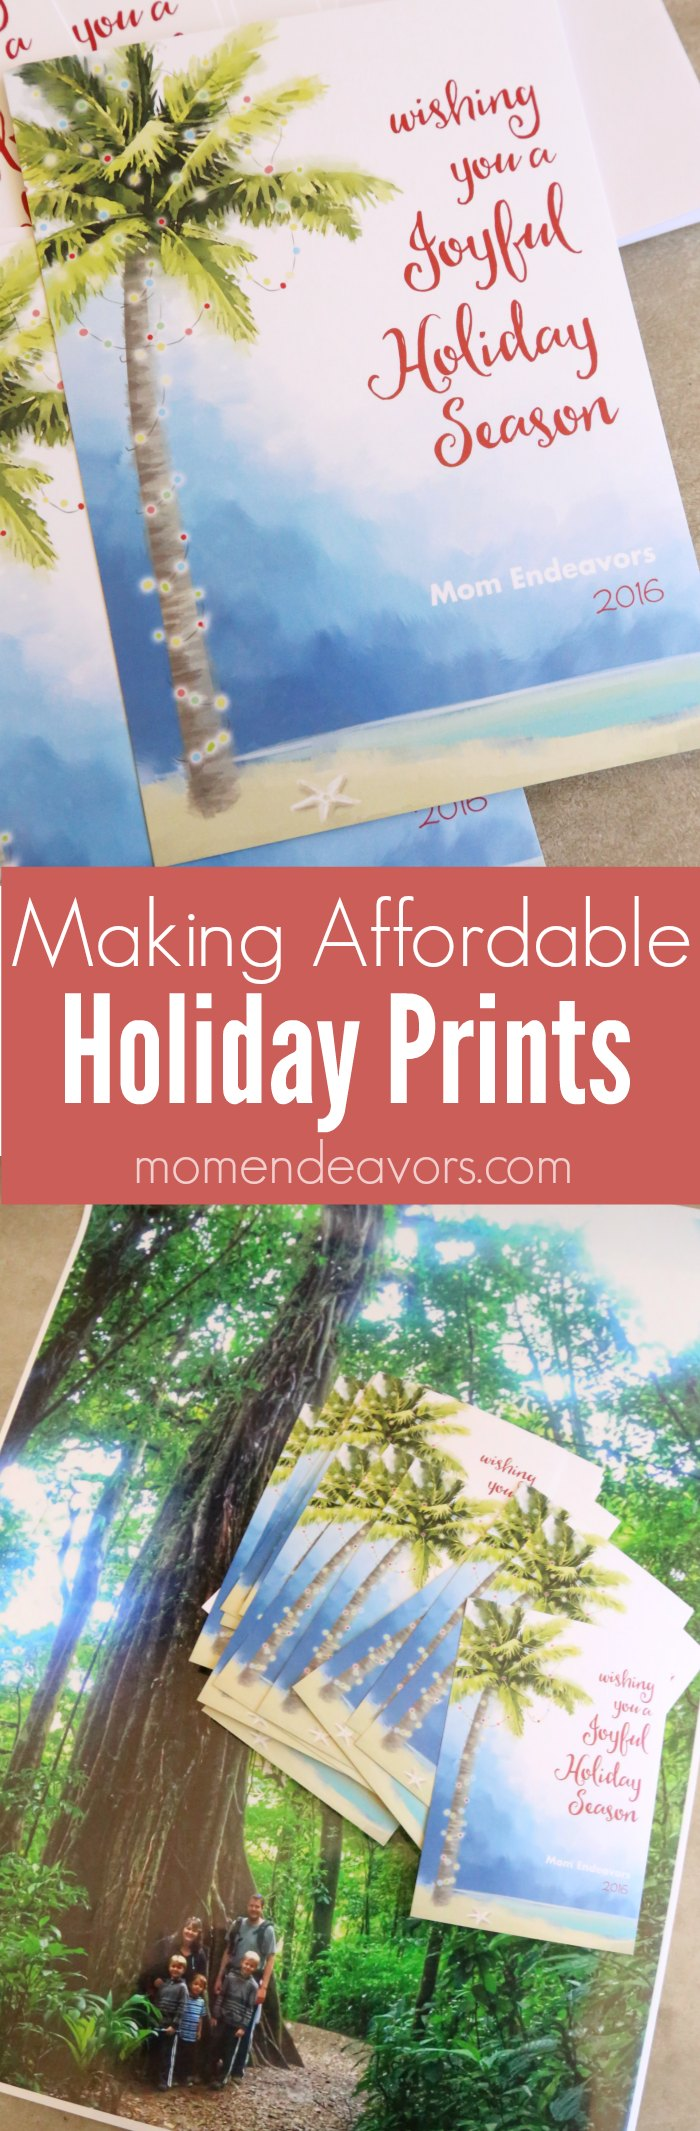 Making Affordable Holiday Prints